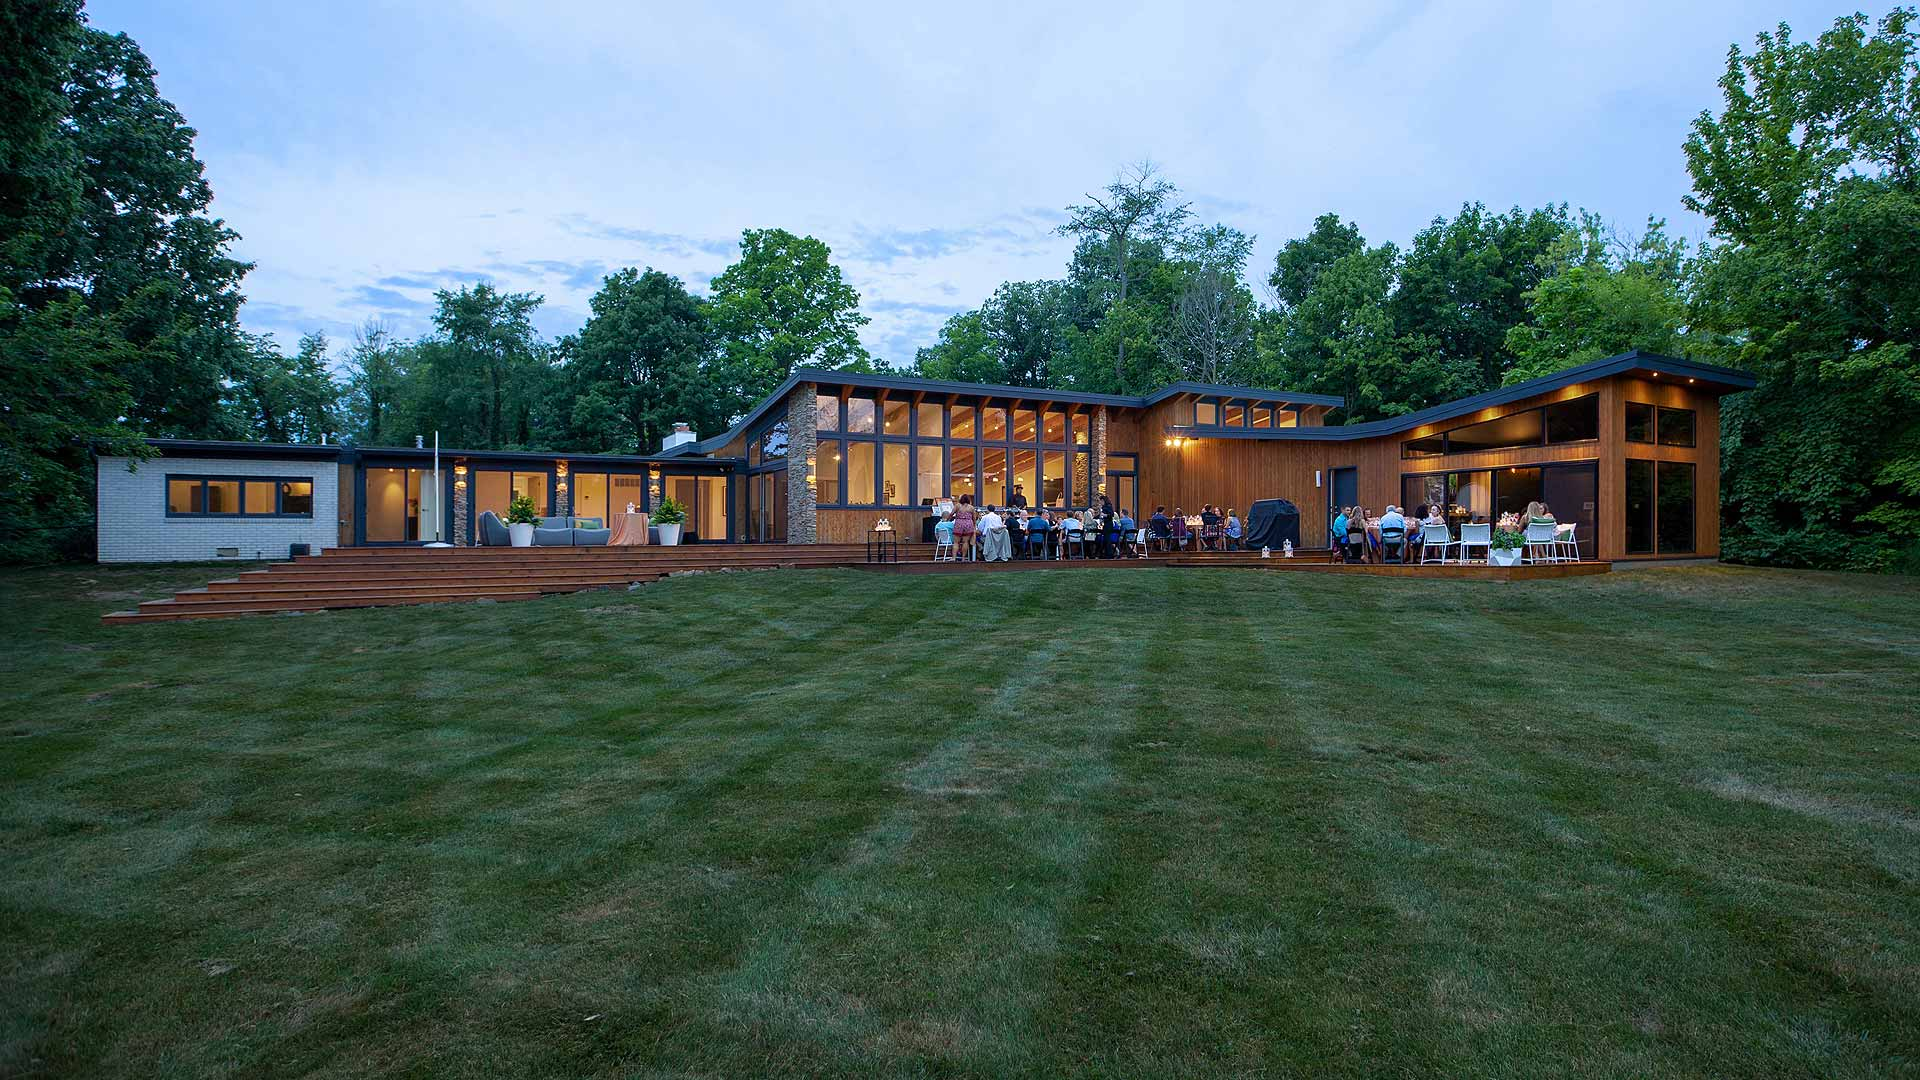 Back Elevation During Summer Party - Cigar Room - Midcentury Modern Addition - Brendonwood, Indianapolis - Christopher Short, Paul Reynolds, Architects, HAUS | Architecture For Modern Lifestyles - WERK | Building Modern - Paul Reynolds, Project Manager